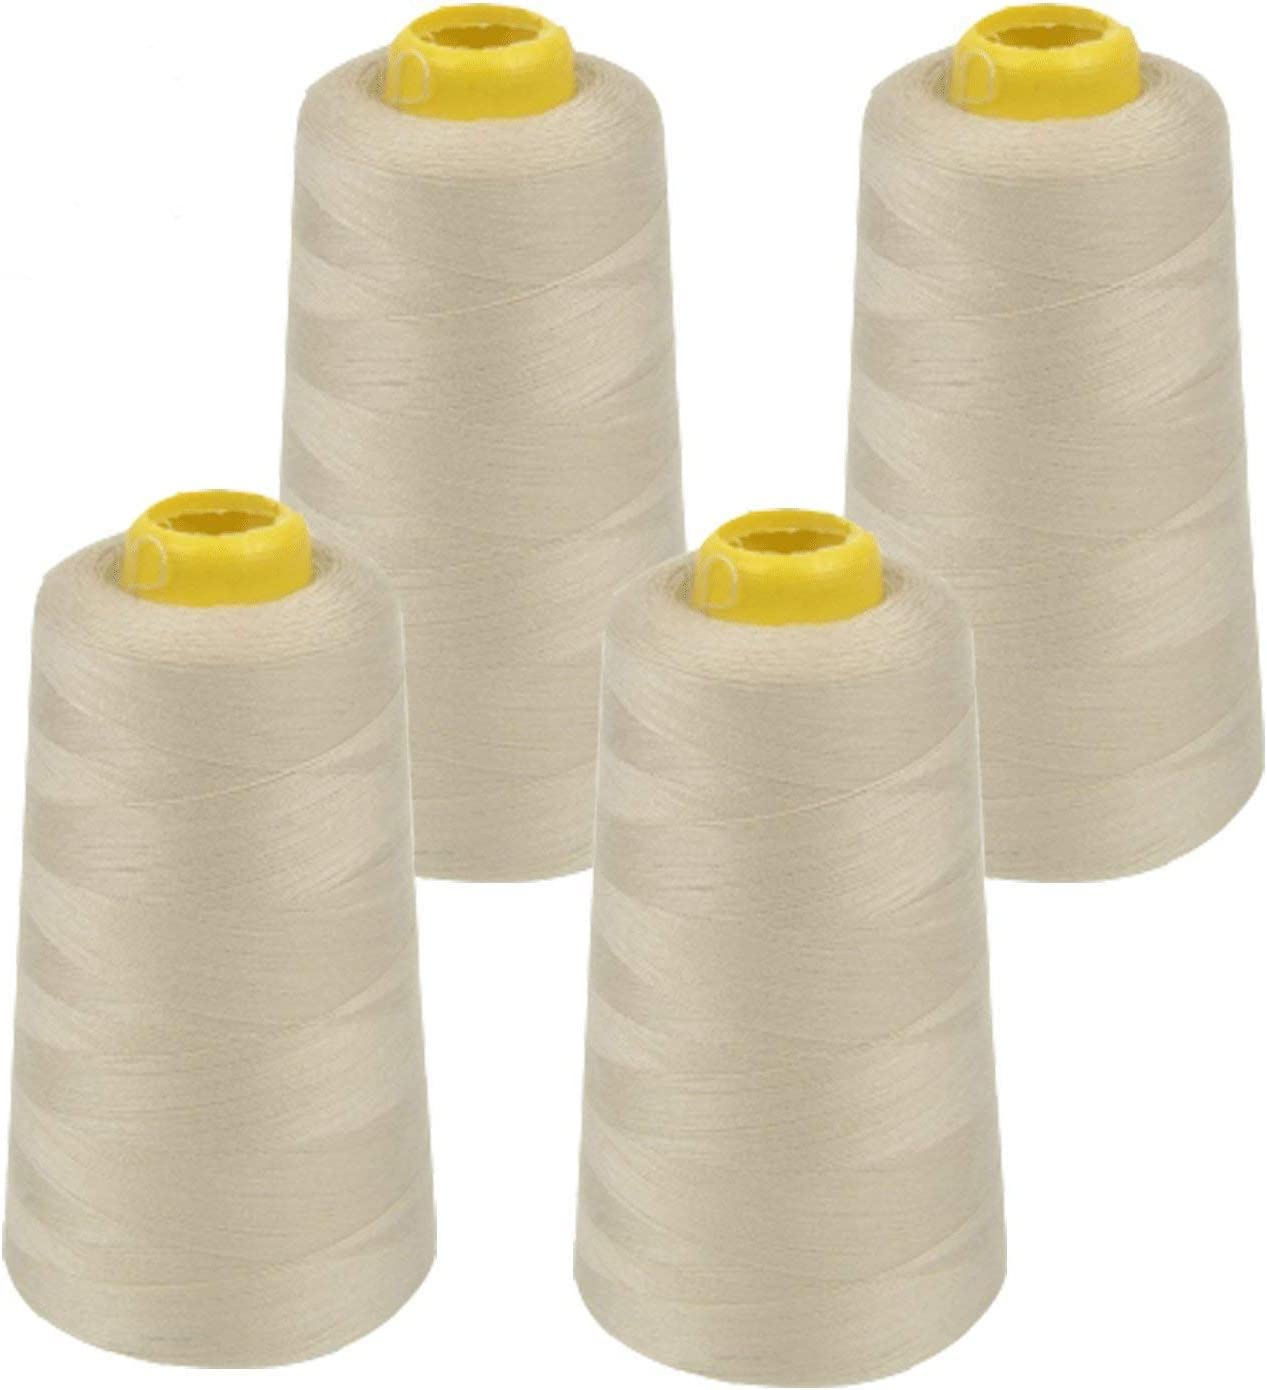 4 PACK of 6000 Yard Spools White Sewing Thread All Purpose 100/% Spun Polyester